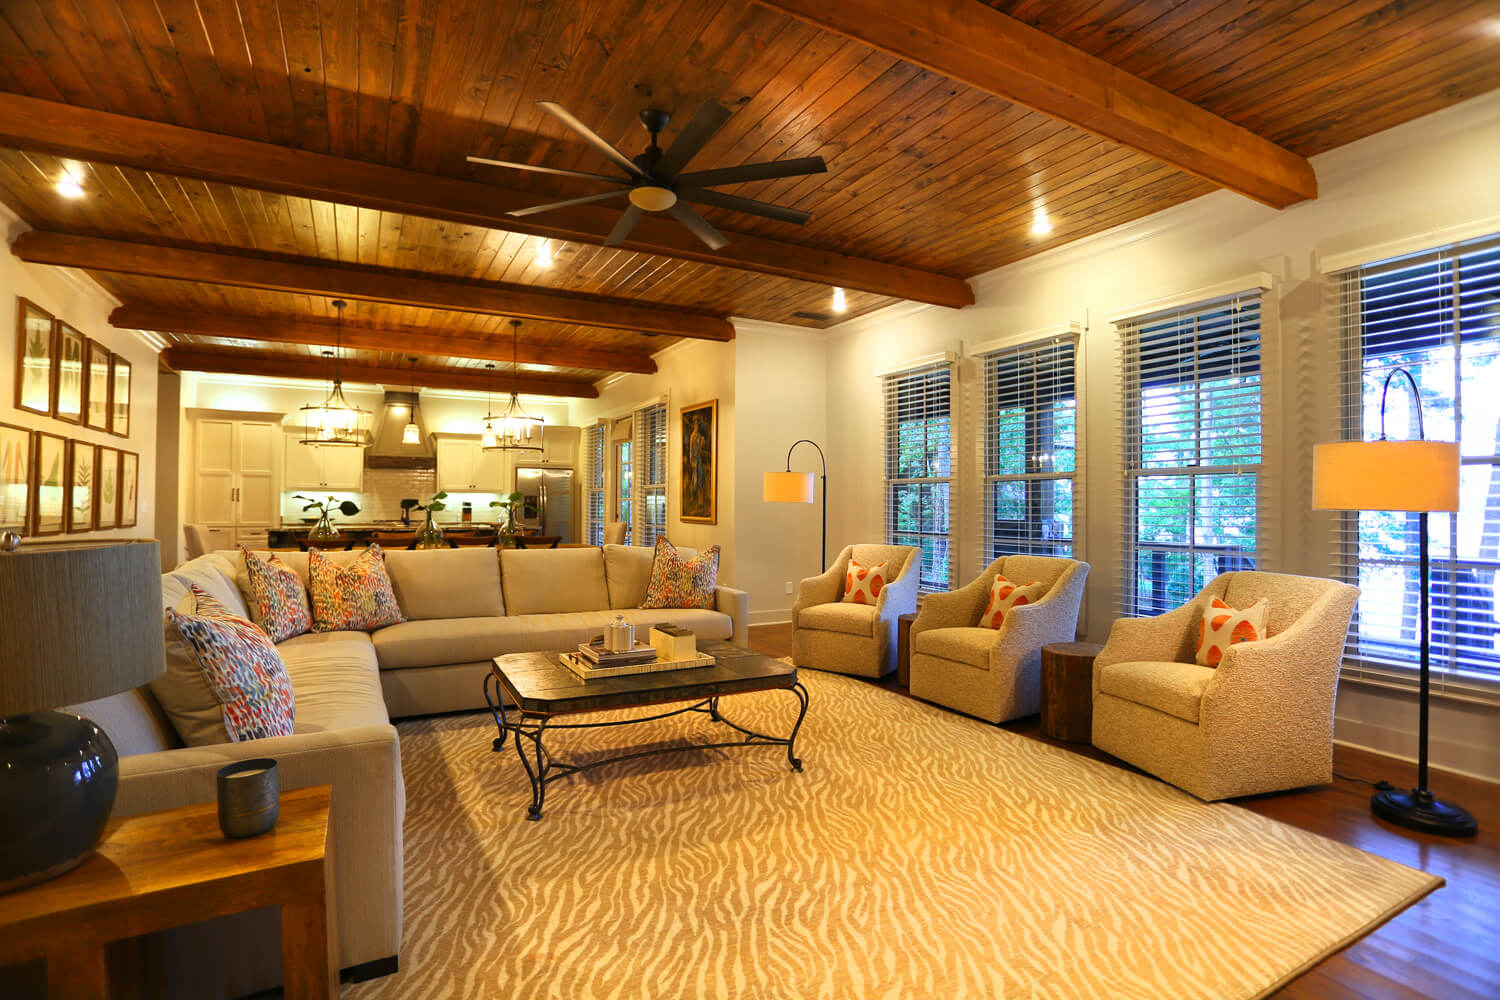 Lake Martin Cabin - Family Room - Designed by Foshee Architecture